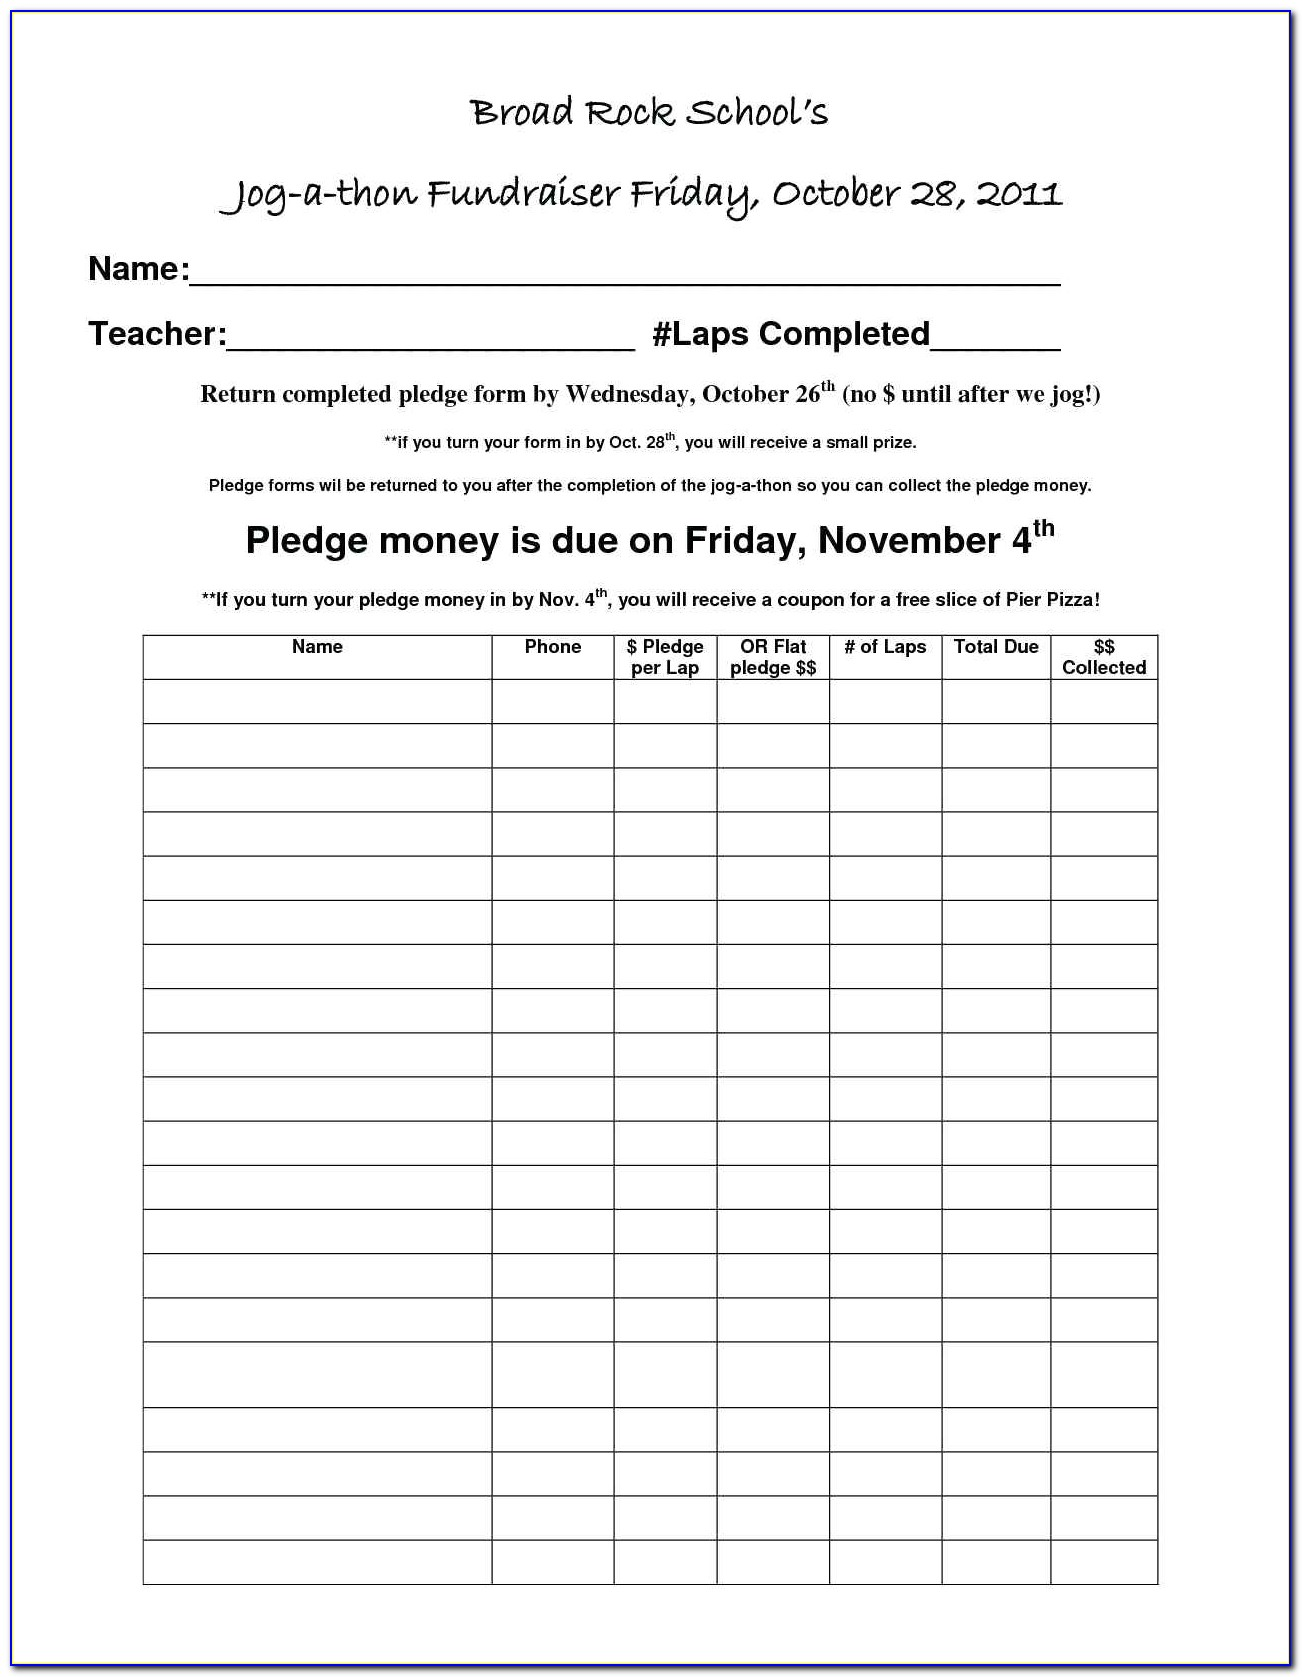 Weight Loss Sponsor Form Template Vincegray2014